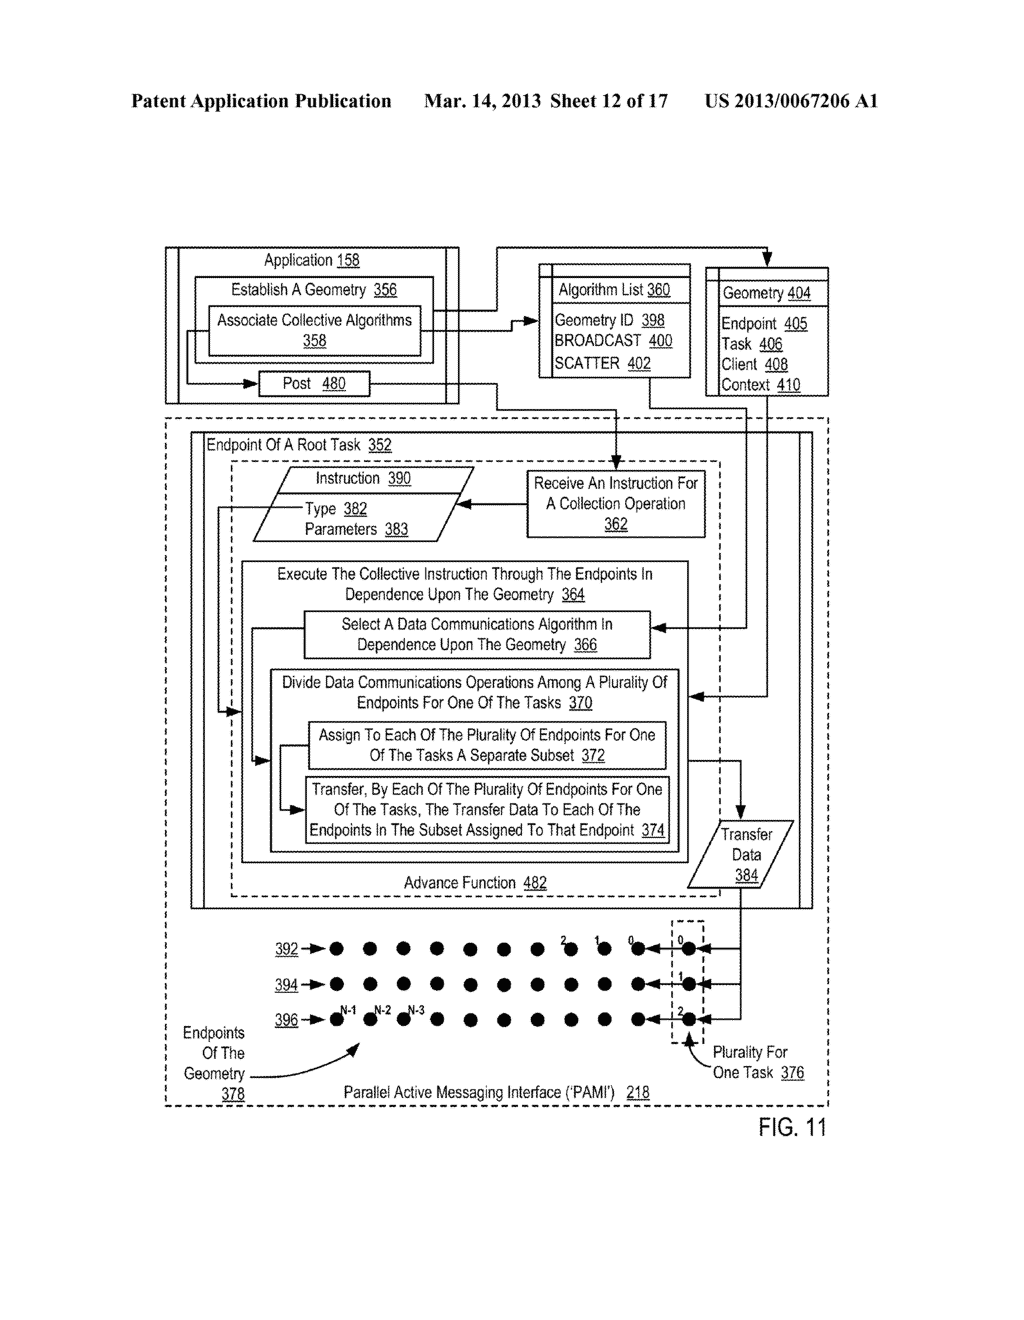 Endpoint-Based Parallel Data Processing In A Parallel Active Messaging     Interface Of A Parallel Computer - diagram, schematic, and image 13